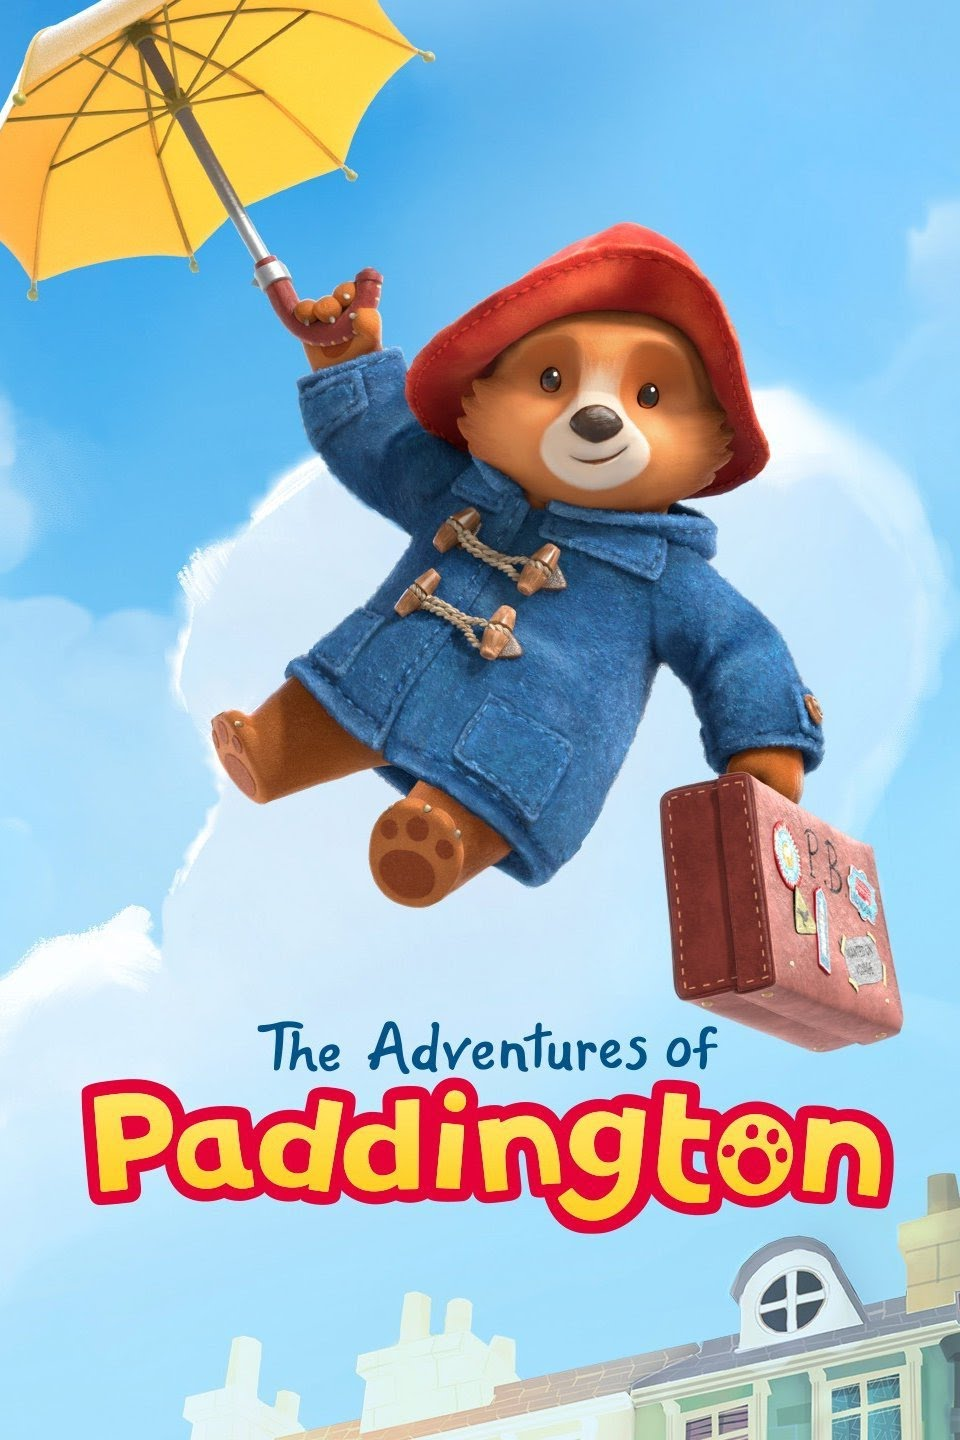 The Adventures of Paddington (2020 TV Series)